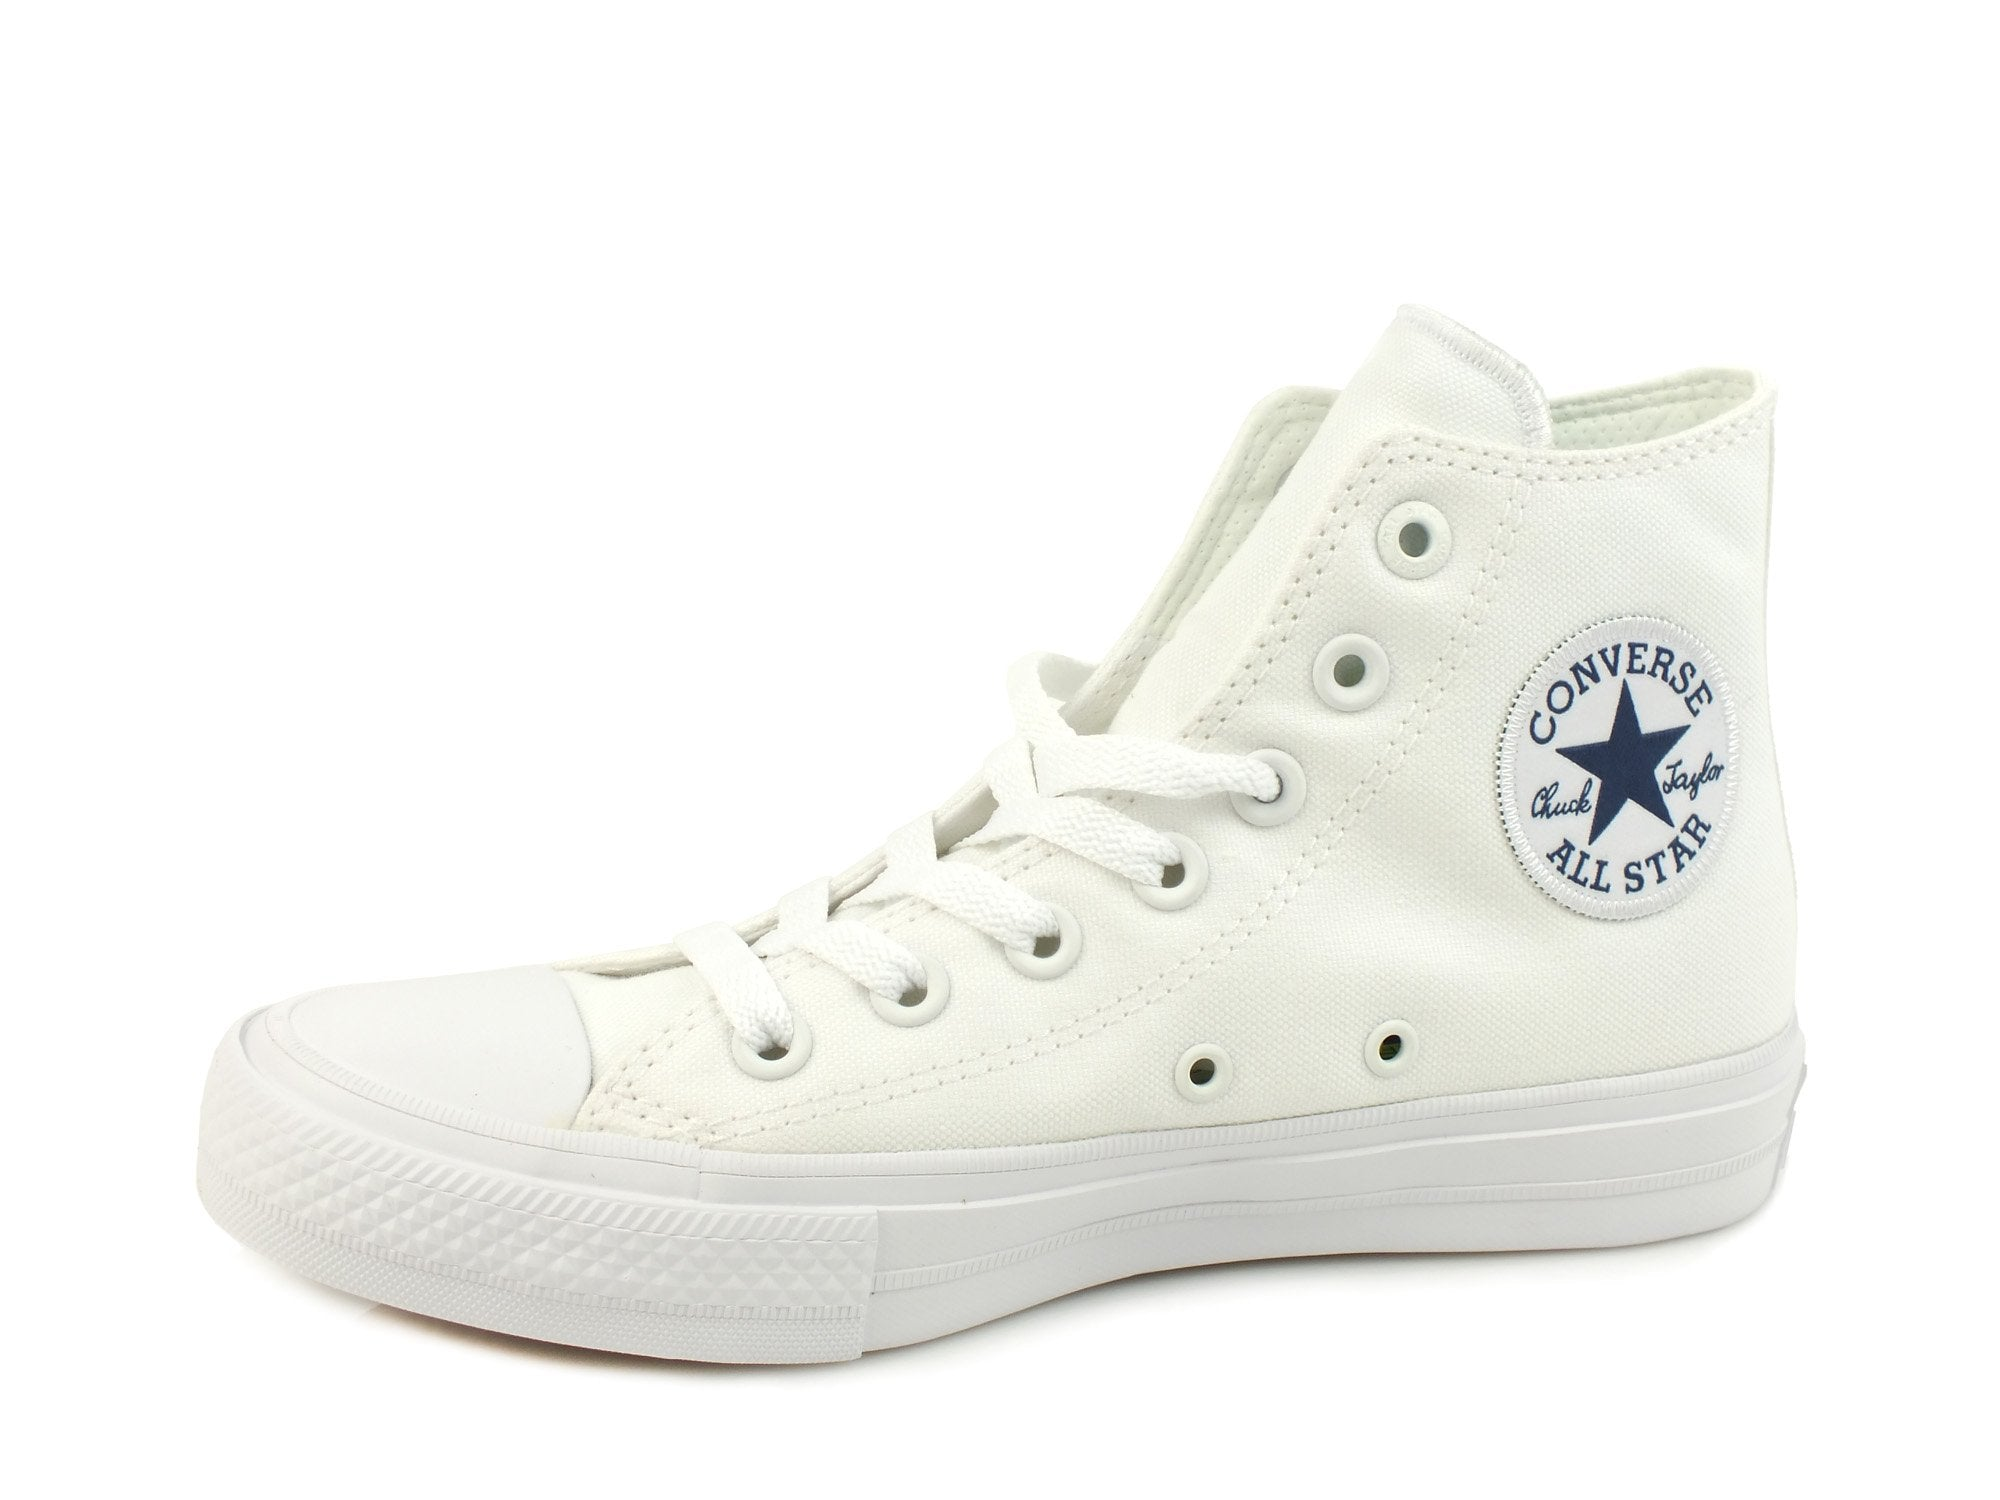 CONVERSE CT All Star Hi Sneakers White 150148C